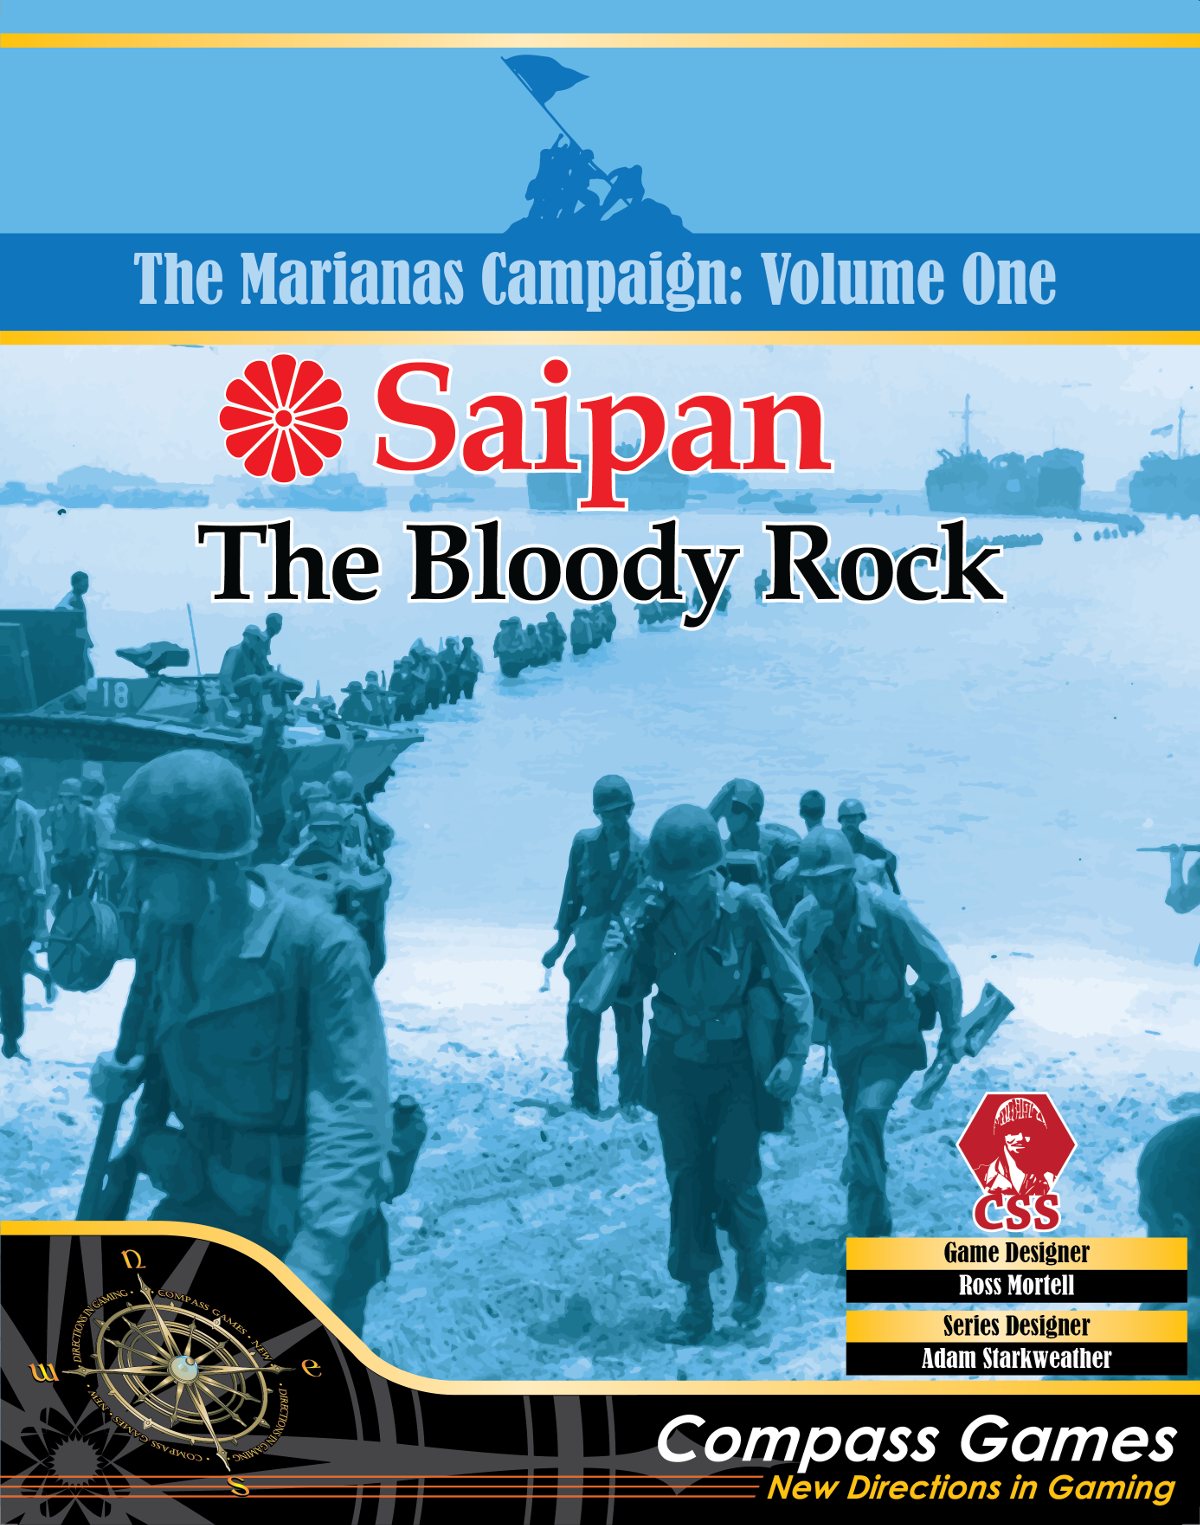 Saipan: The Bloody Rock [The Marianas Campaign: Volume One]